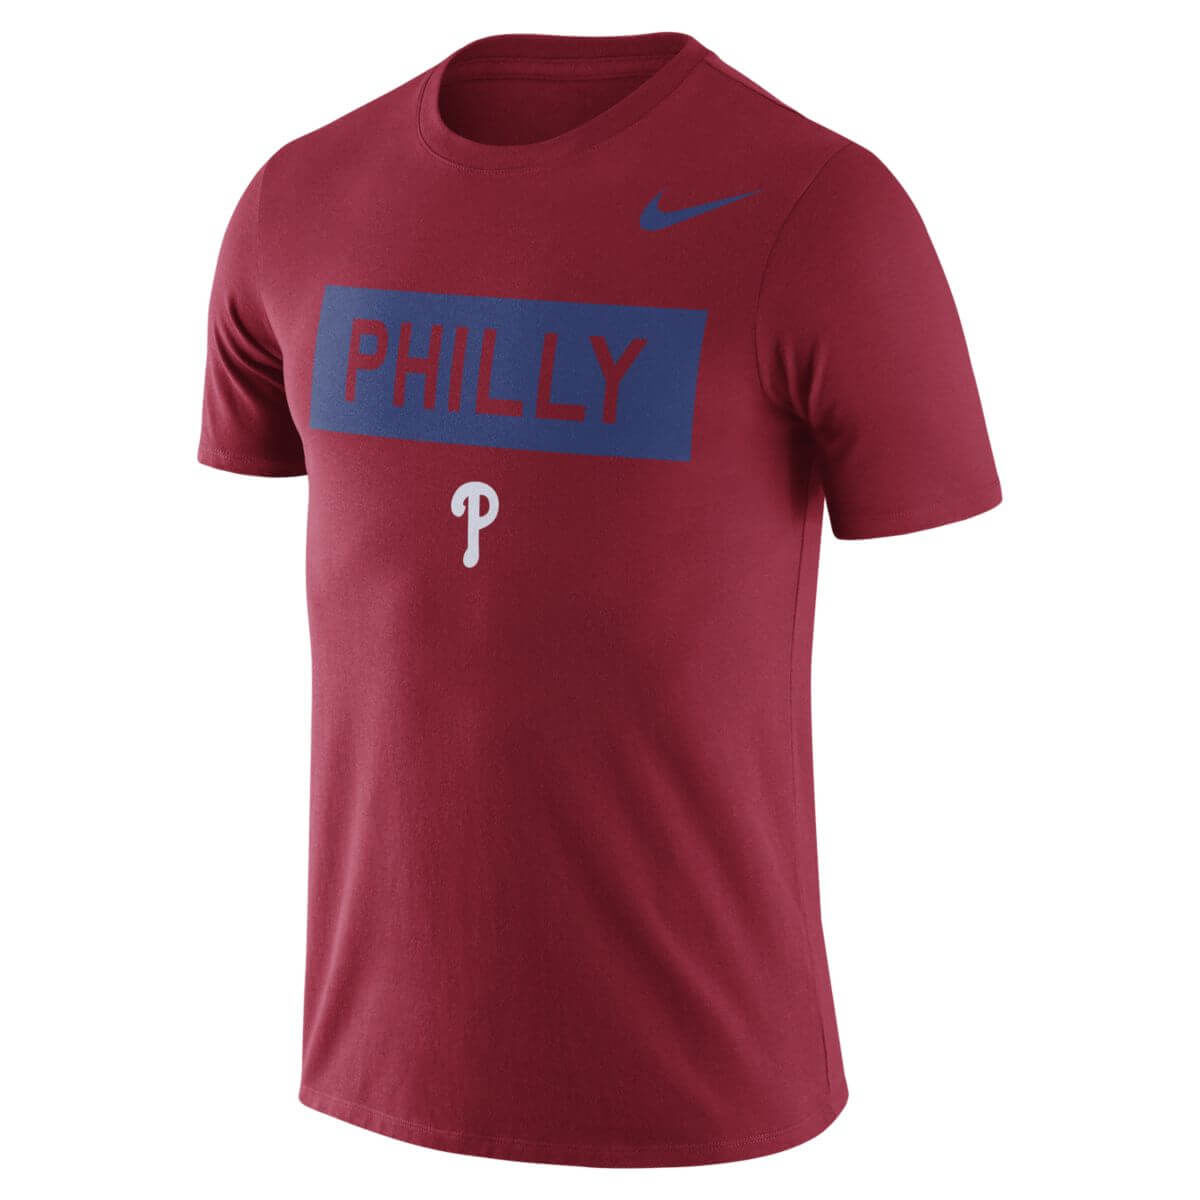 Philadelphia Phillies Adult Philly T-Shirt